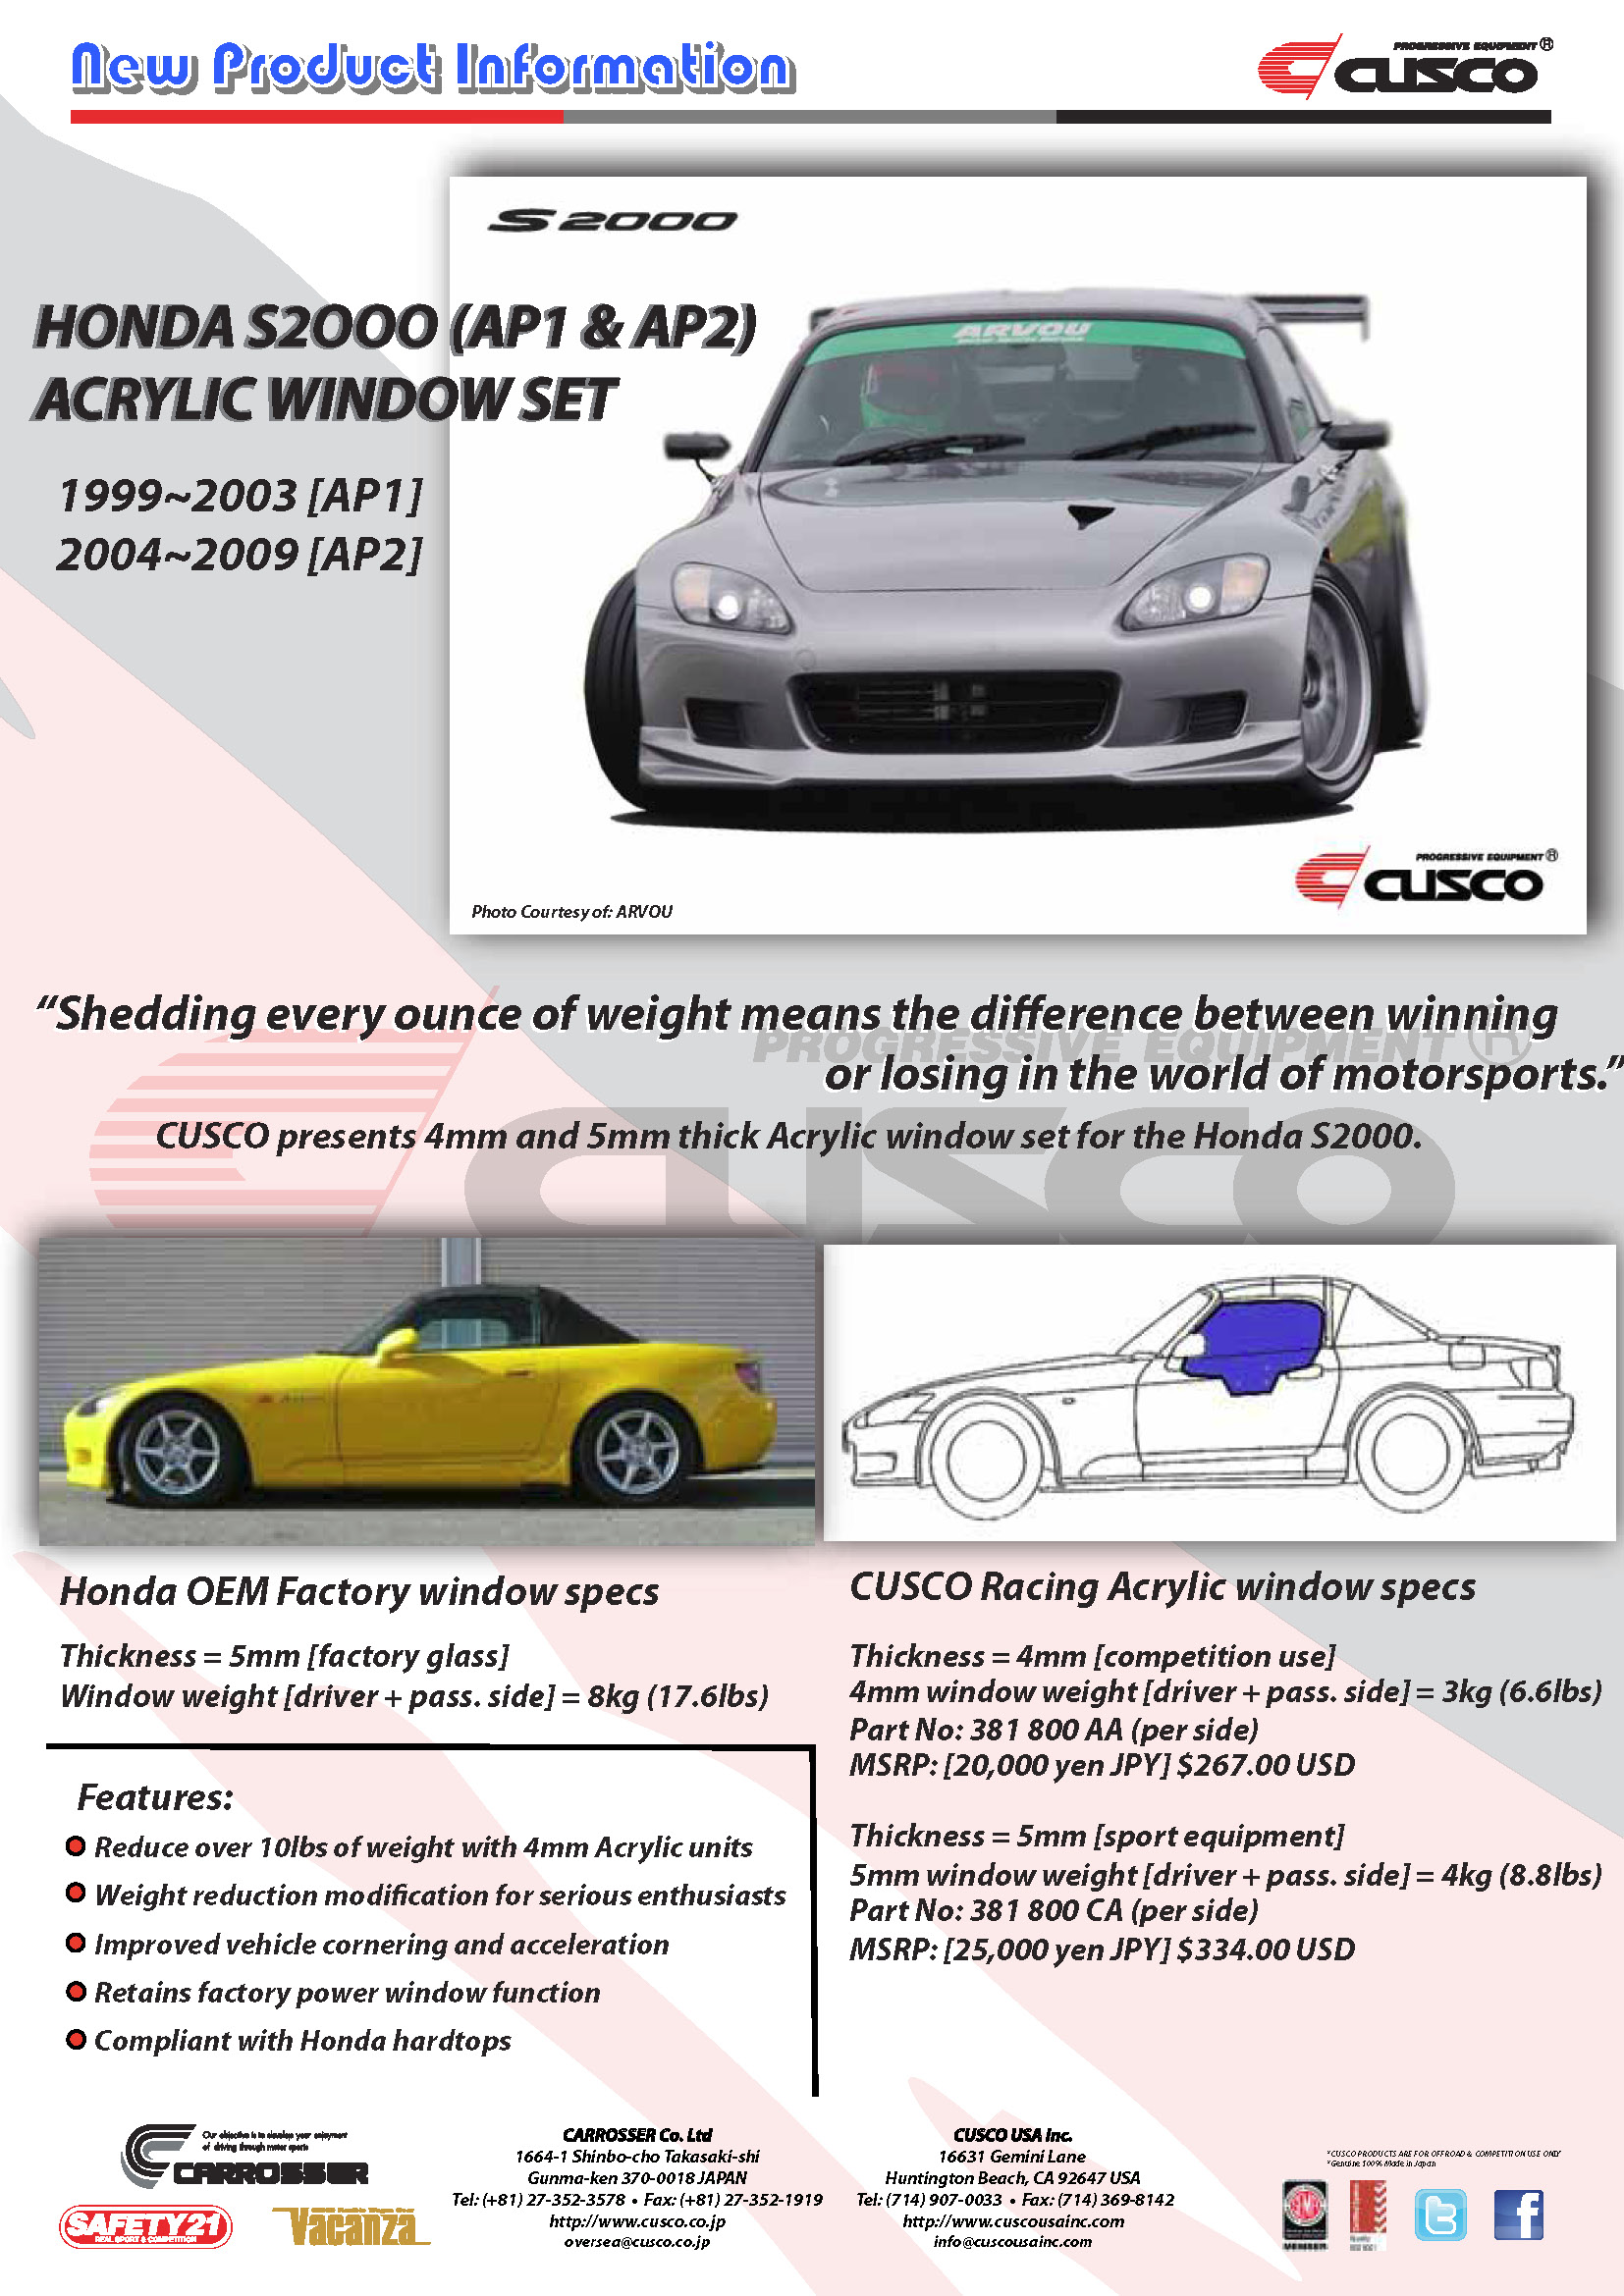 Honda S2000 Lightweight Acrylic Window News English Page CUSCO